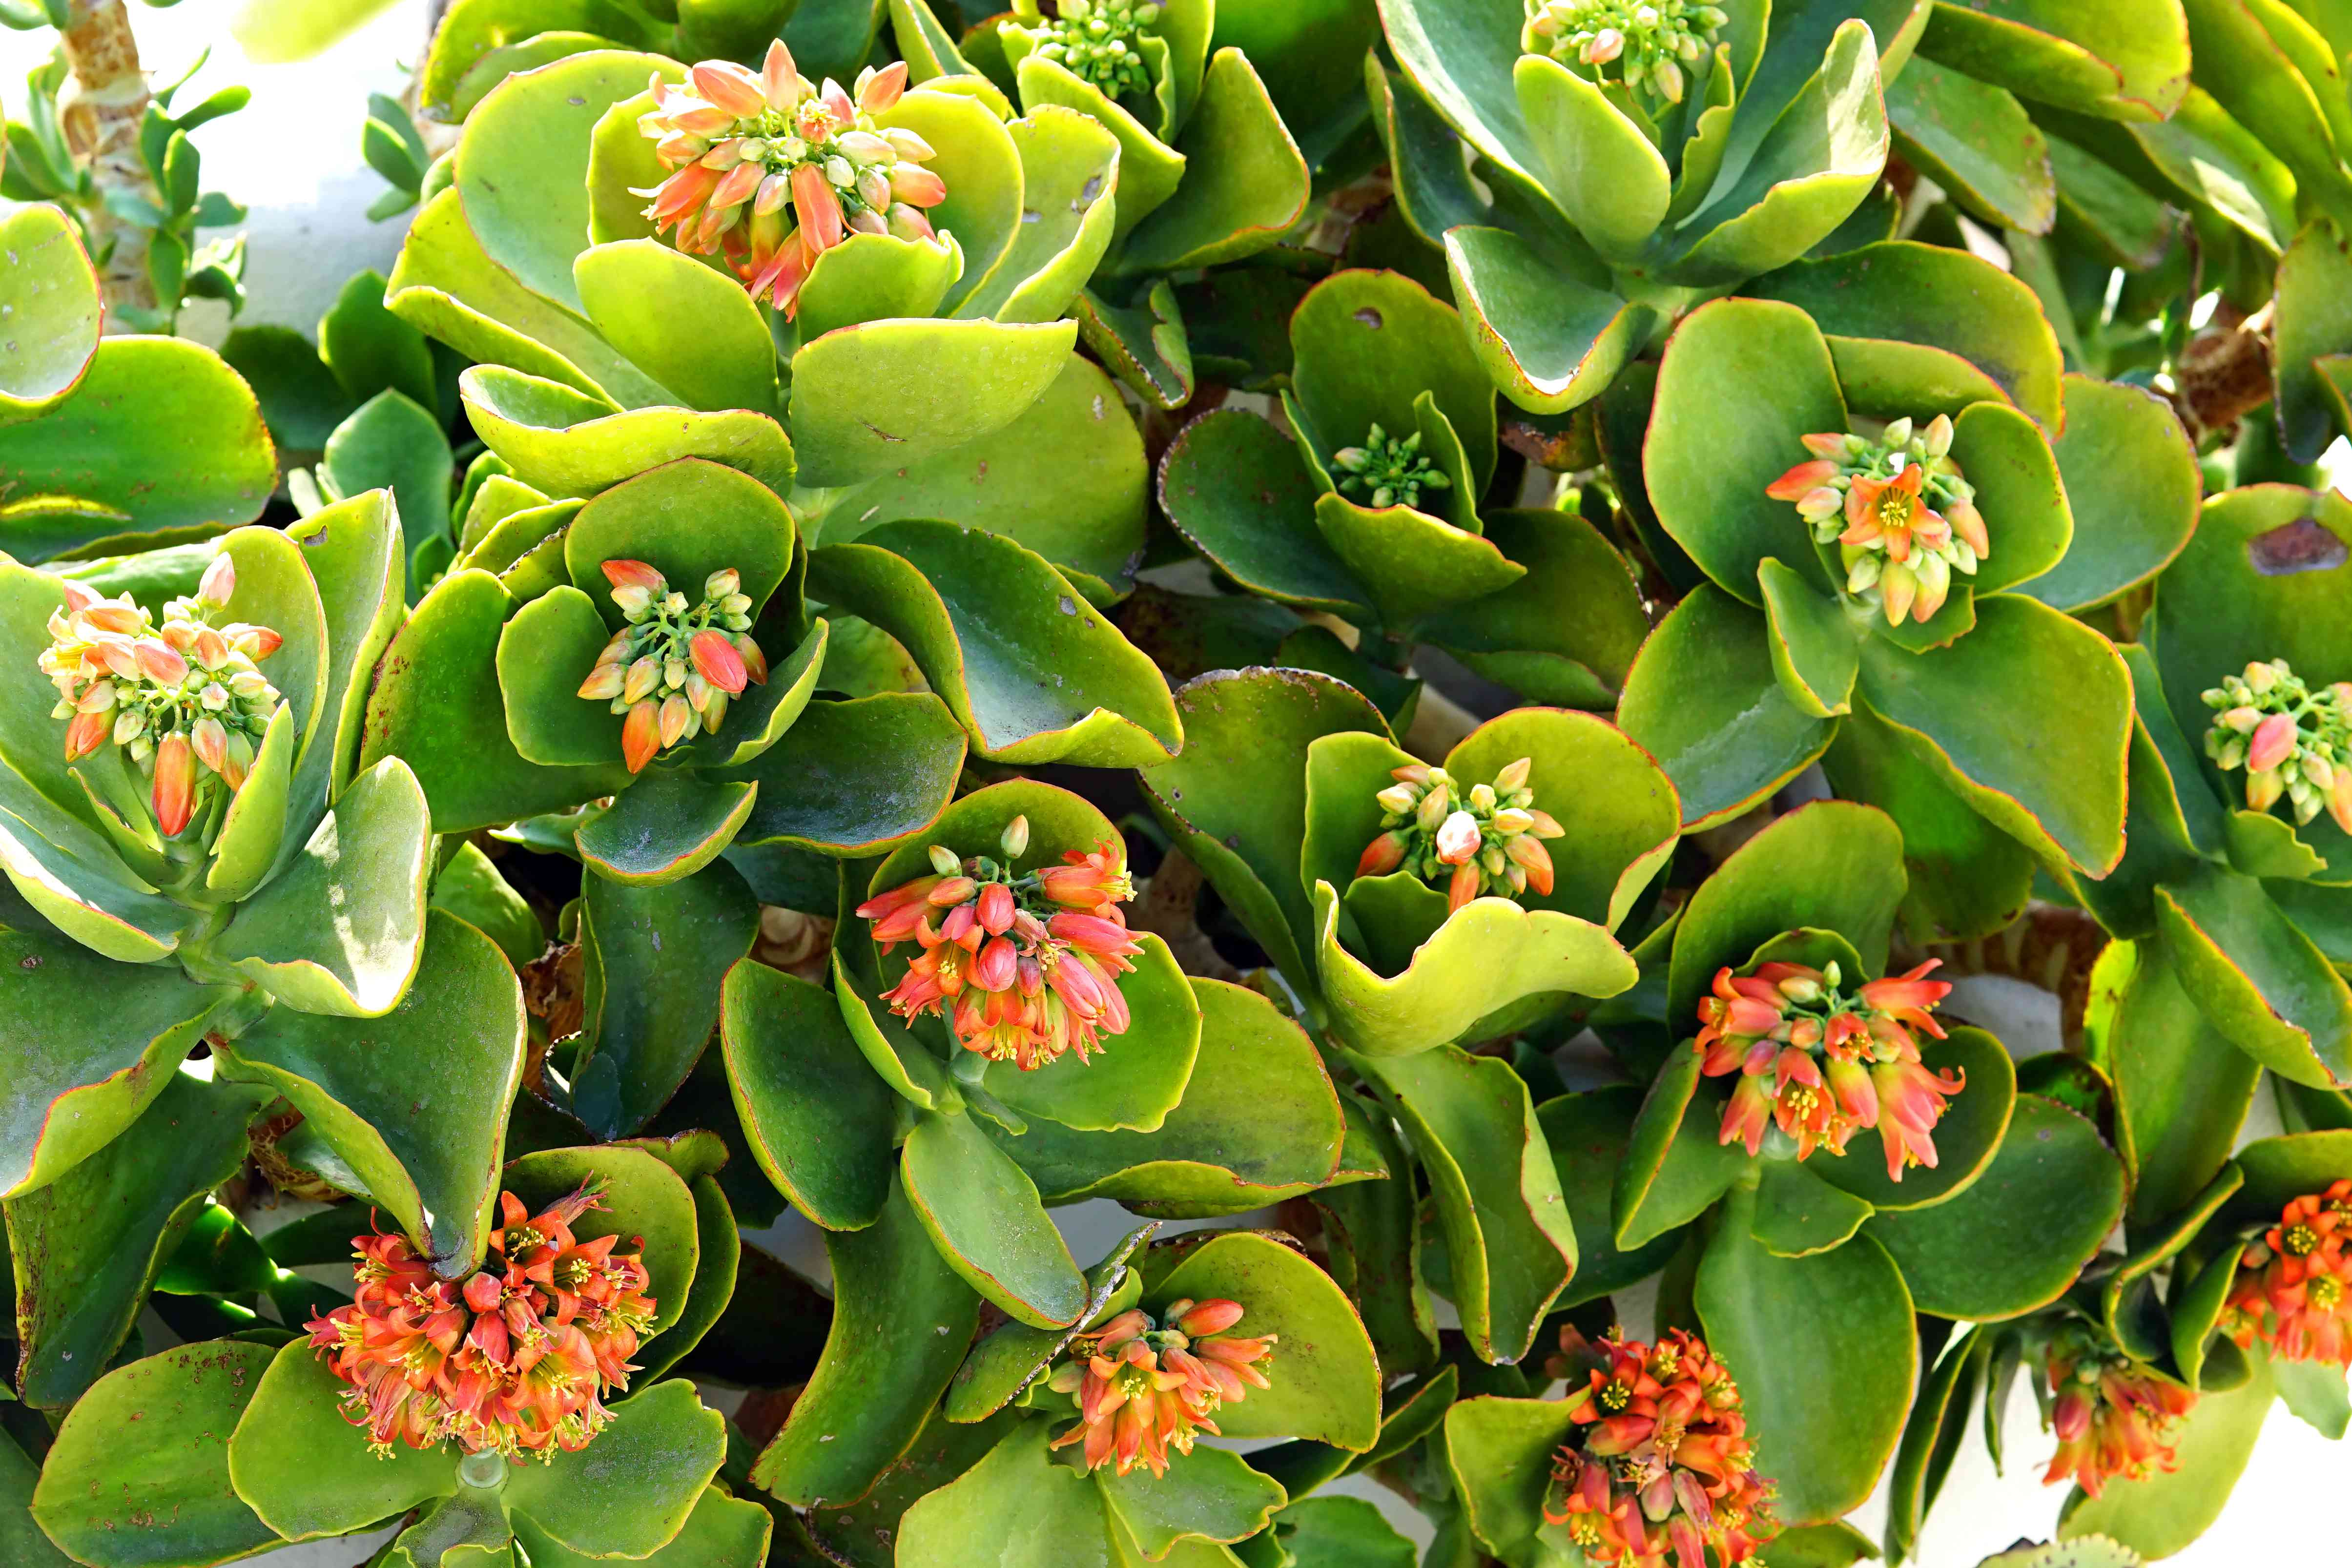 Kalanchoe thyrsiflora is a succulent plant native from Madacascar which produces beautiful flowers